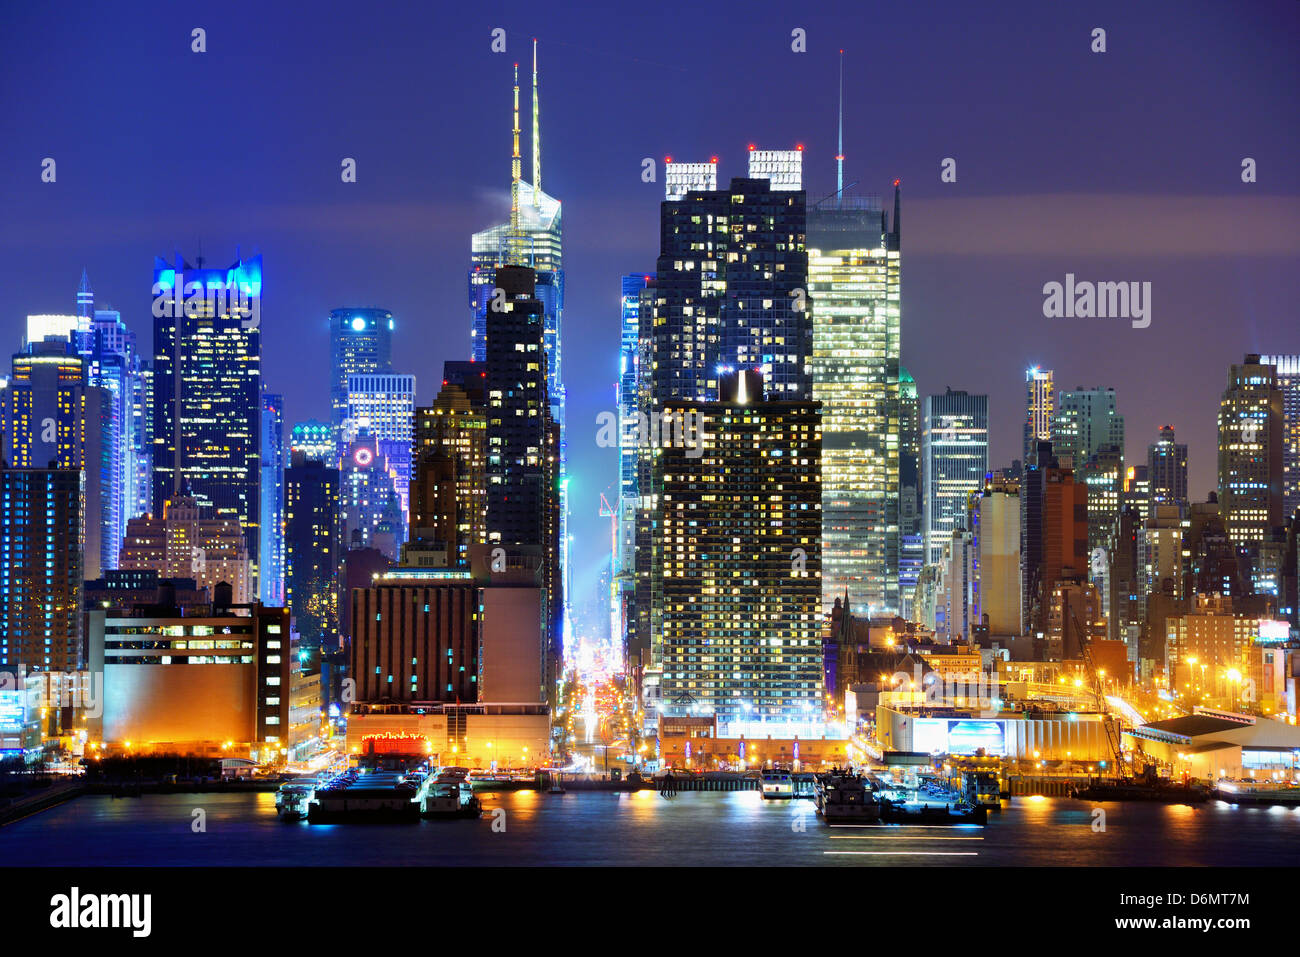 Midtown Manhattan at 42nd Street viewed from across the Hudson River in New York City. - Stock Image